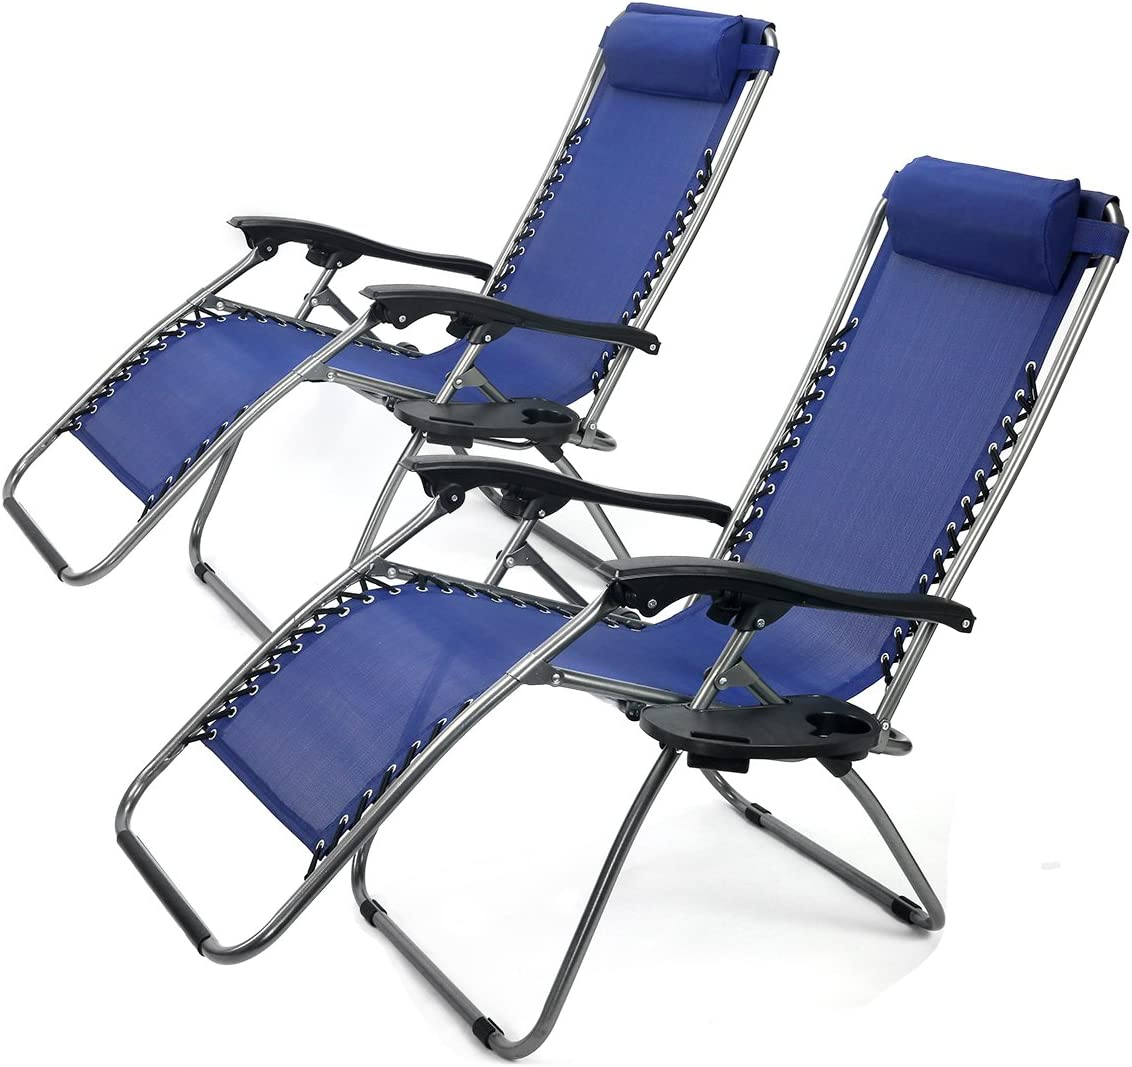 XtremepowerUS Zero Gravity Adjustable Reclining Chair Pool Patio Outdoor Lounge Chairs w Cup Holder – Set of Pair Navy